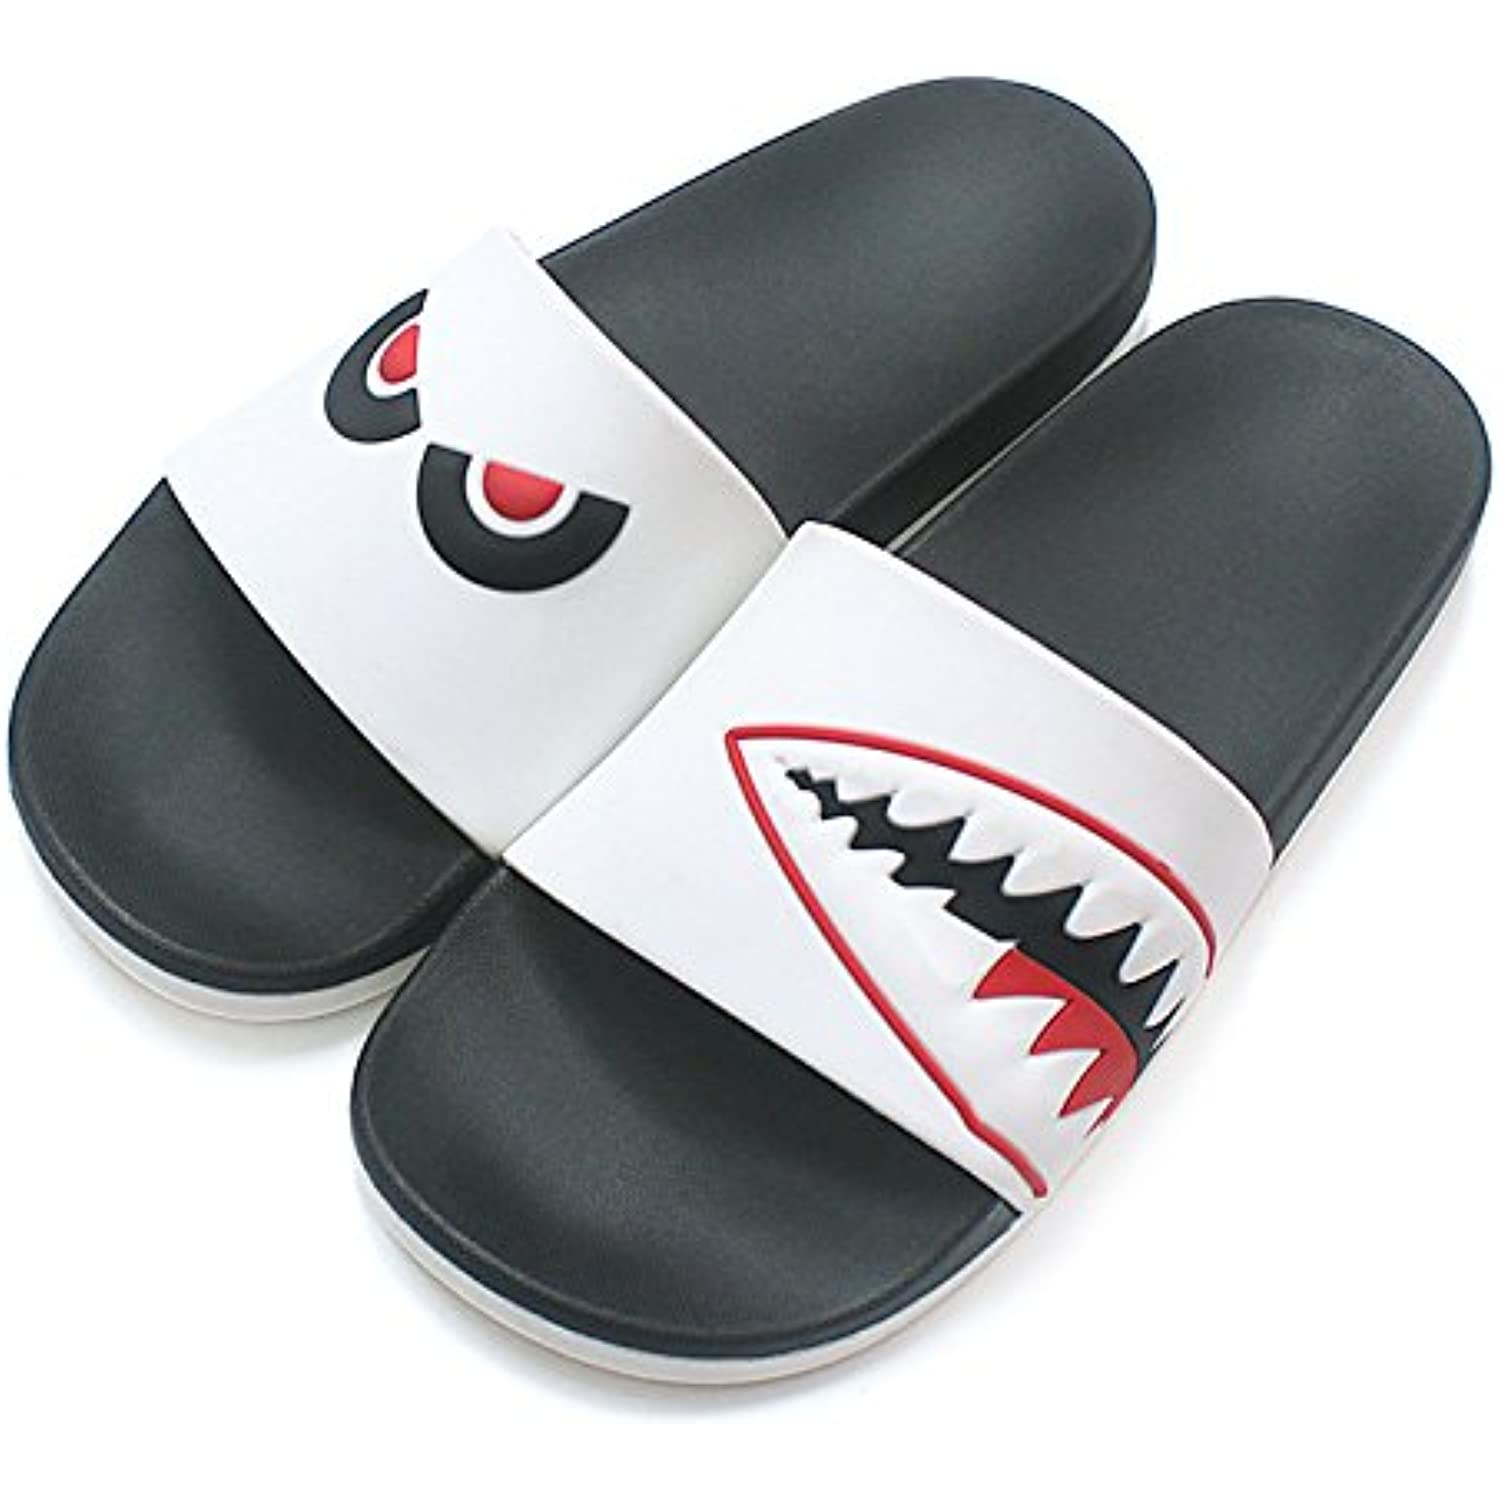 fankou The Tide Personality Male Tide Slippers Male Personality Students Inside and Outside The Home Bath Anti-Slip Bath are Cool... - B07C5CY39X - c854c8